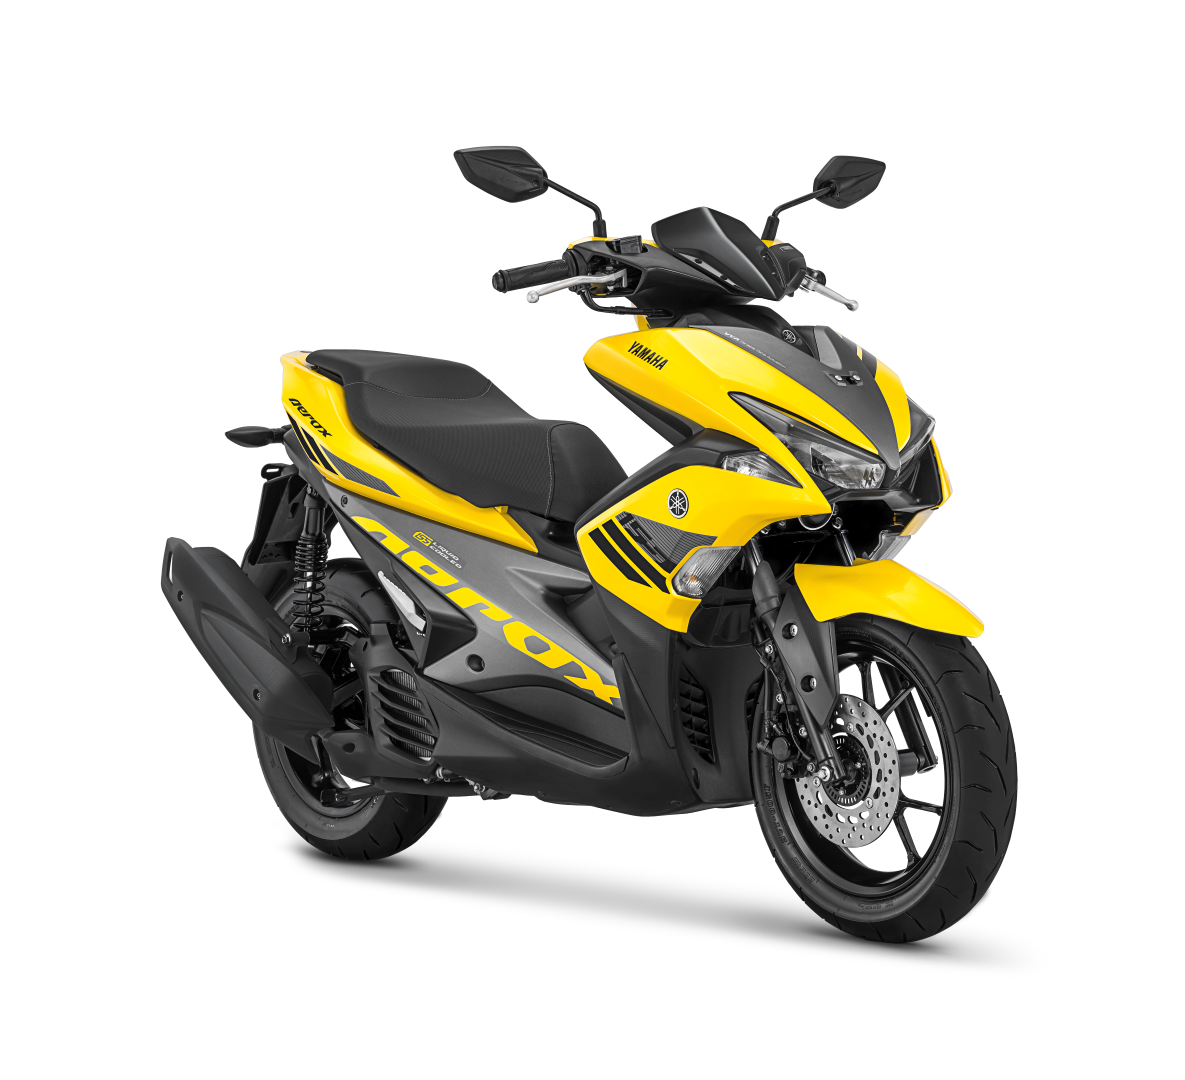 Aerox 155VVA Yellow